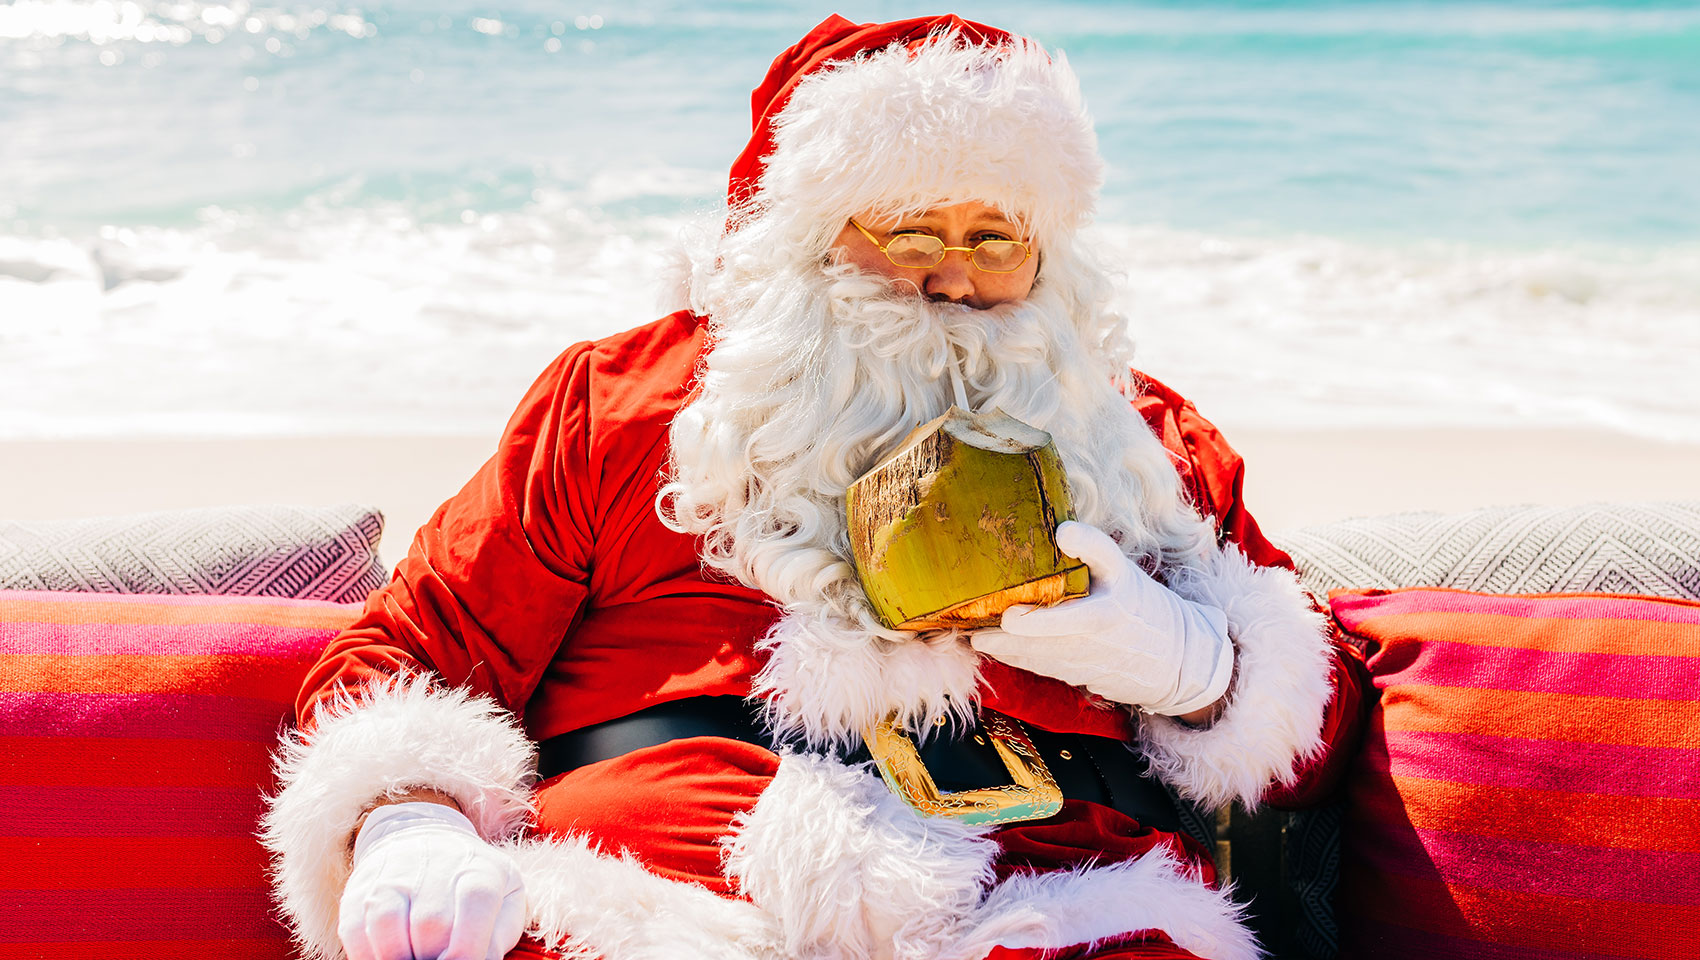 Festive at Kimpton Seafire - Santa sitting on chair on beach with a coconut drink